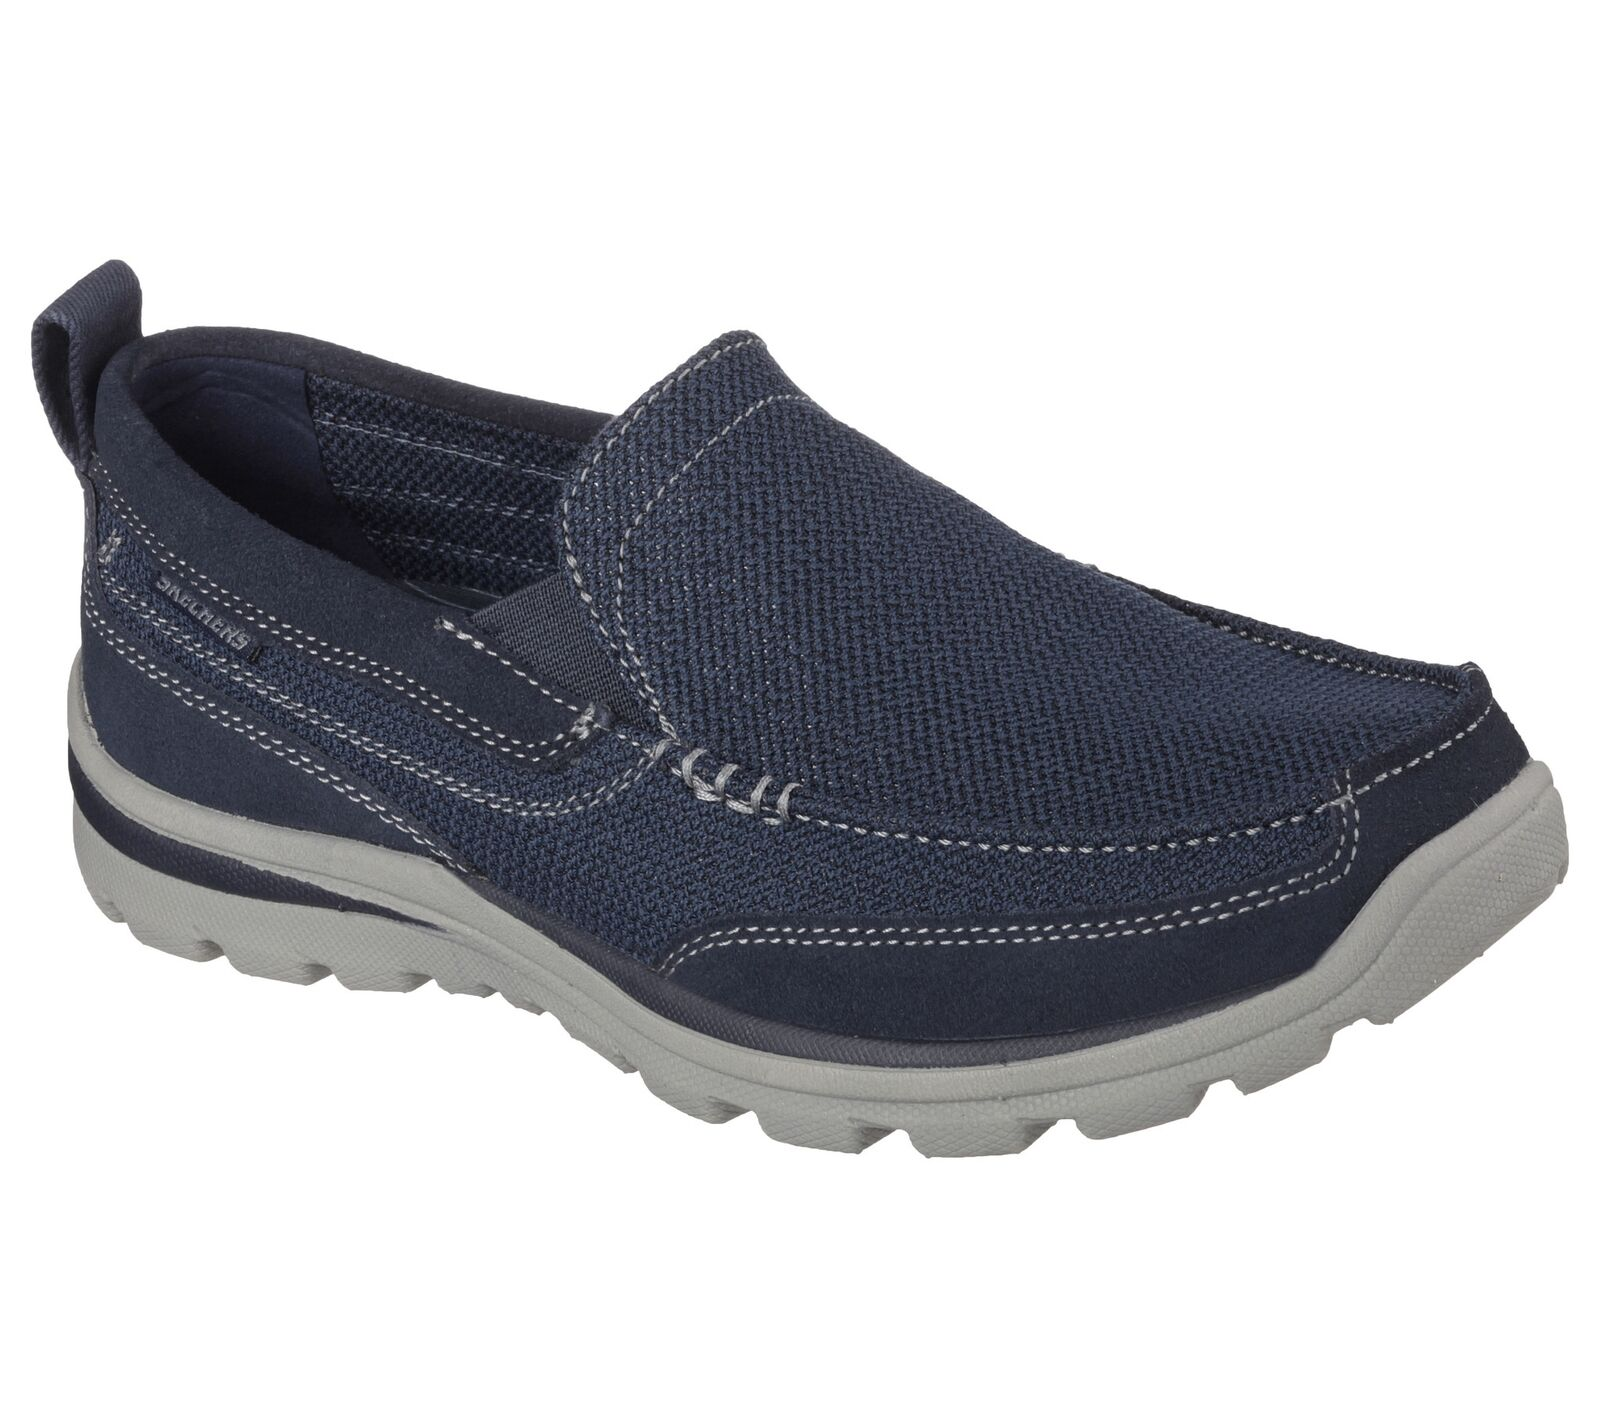 Skechers Relaxed Fit 64365 - Milford - 64365 Fit Navy Schuhes f34982